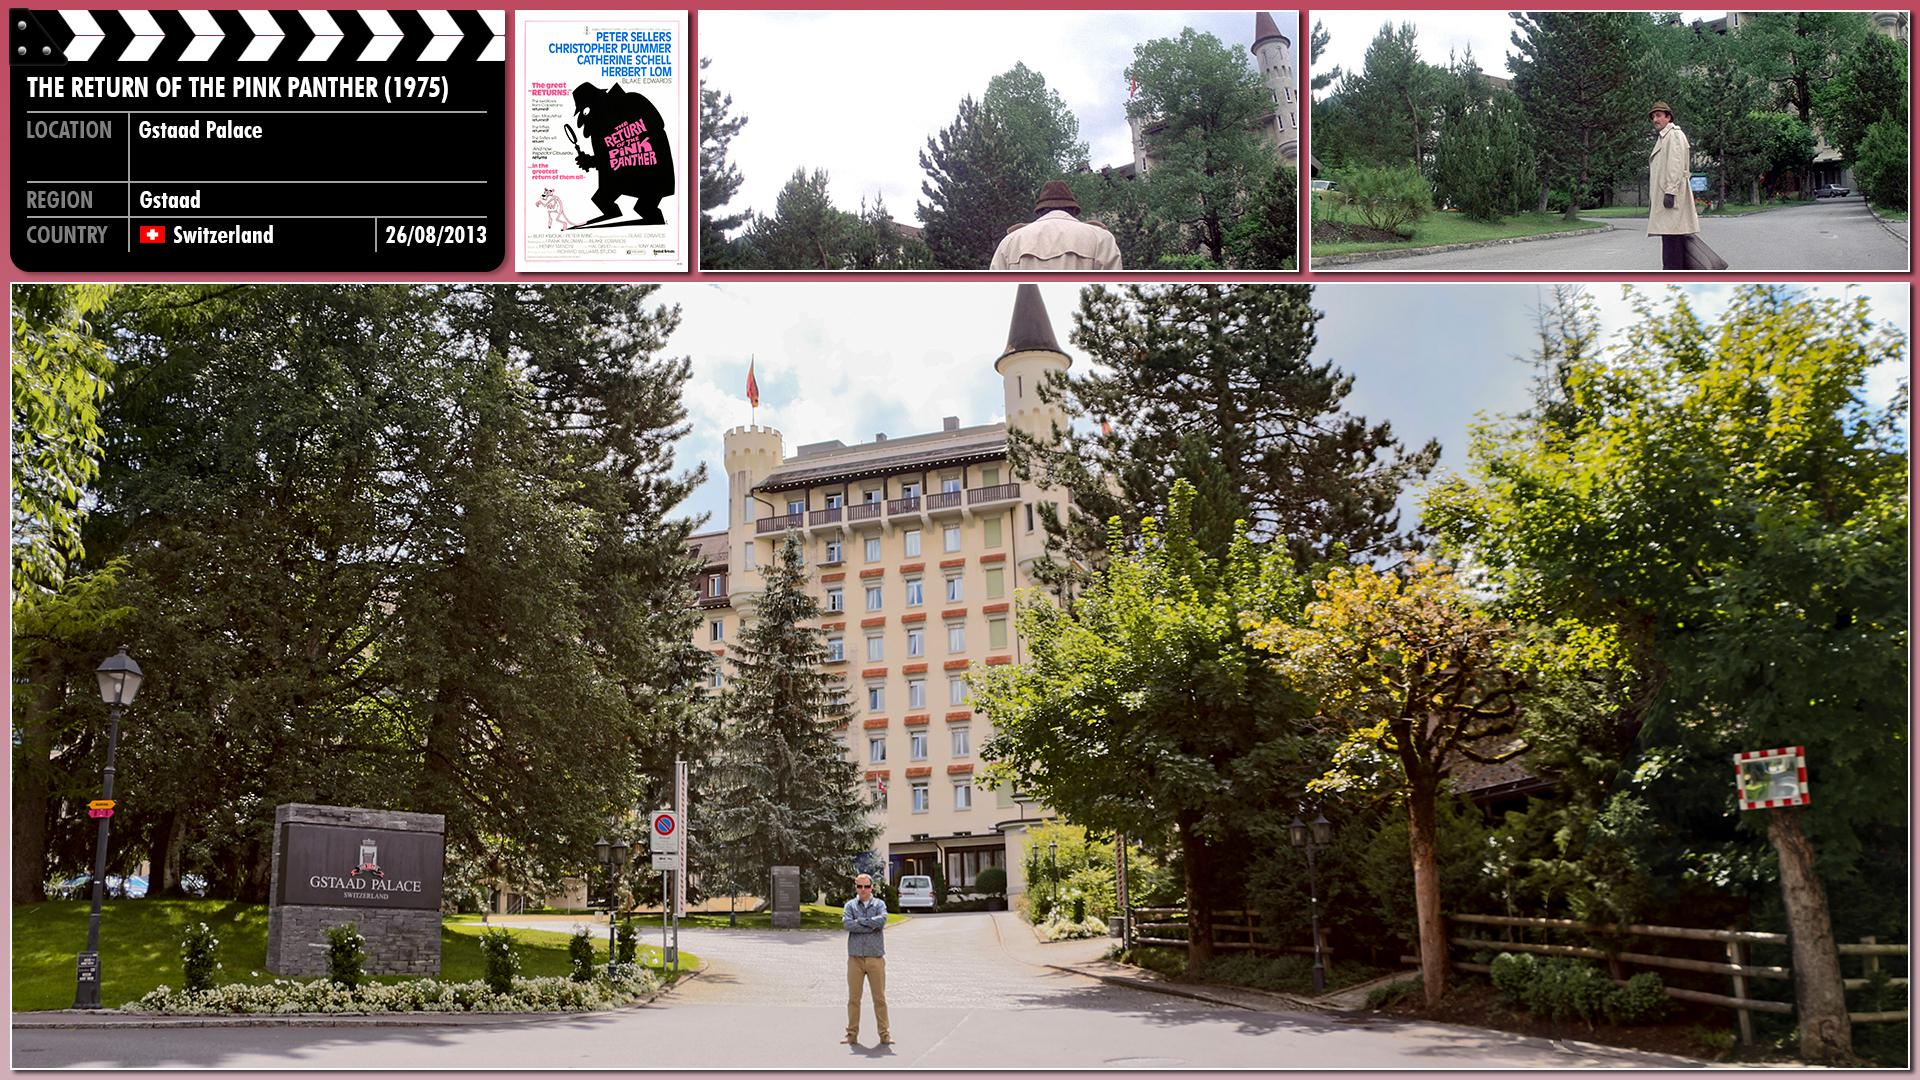 Filming location photo for The Return of the Pink Panther (1975) 1 of 3